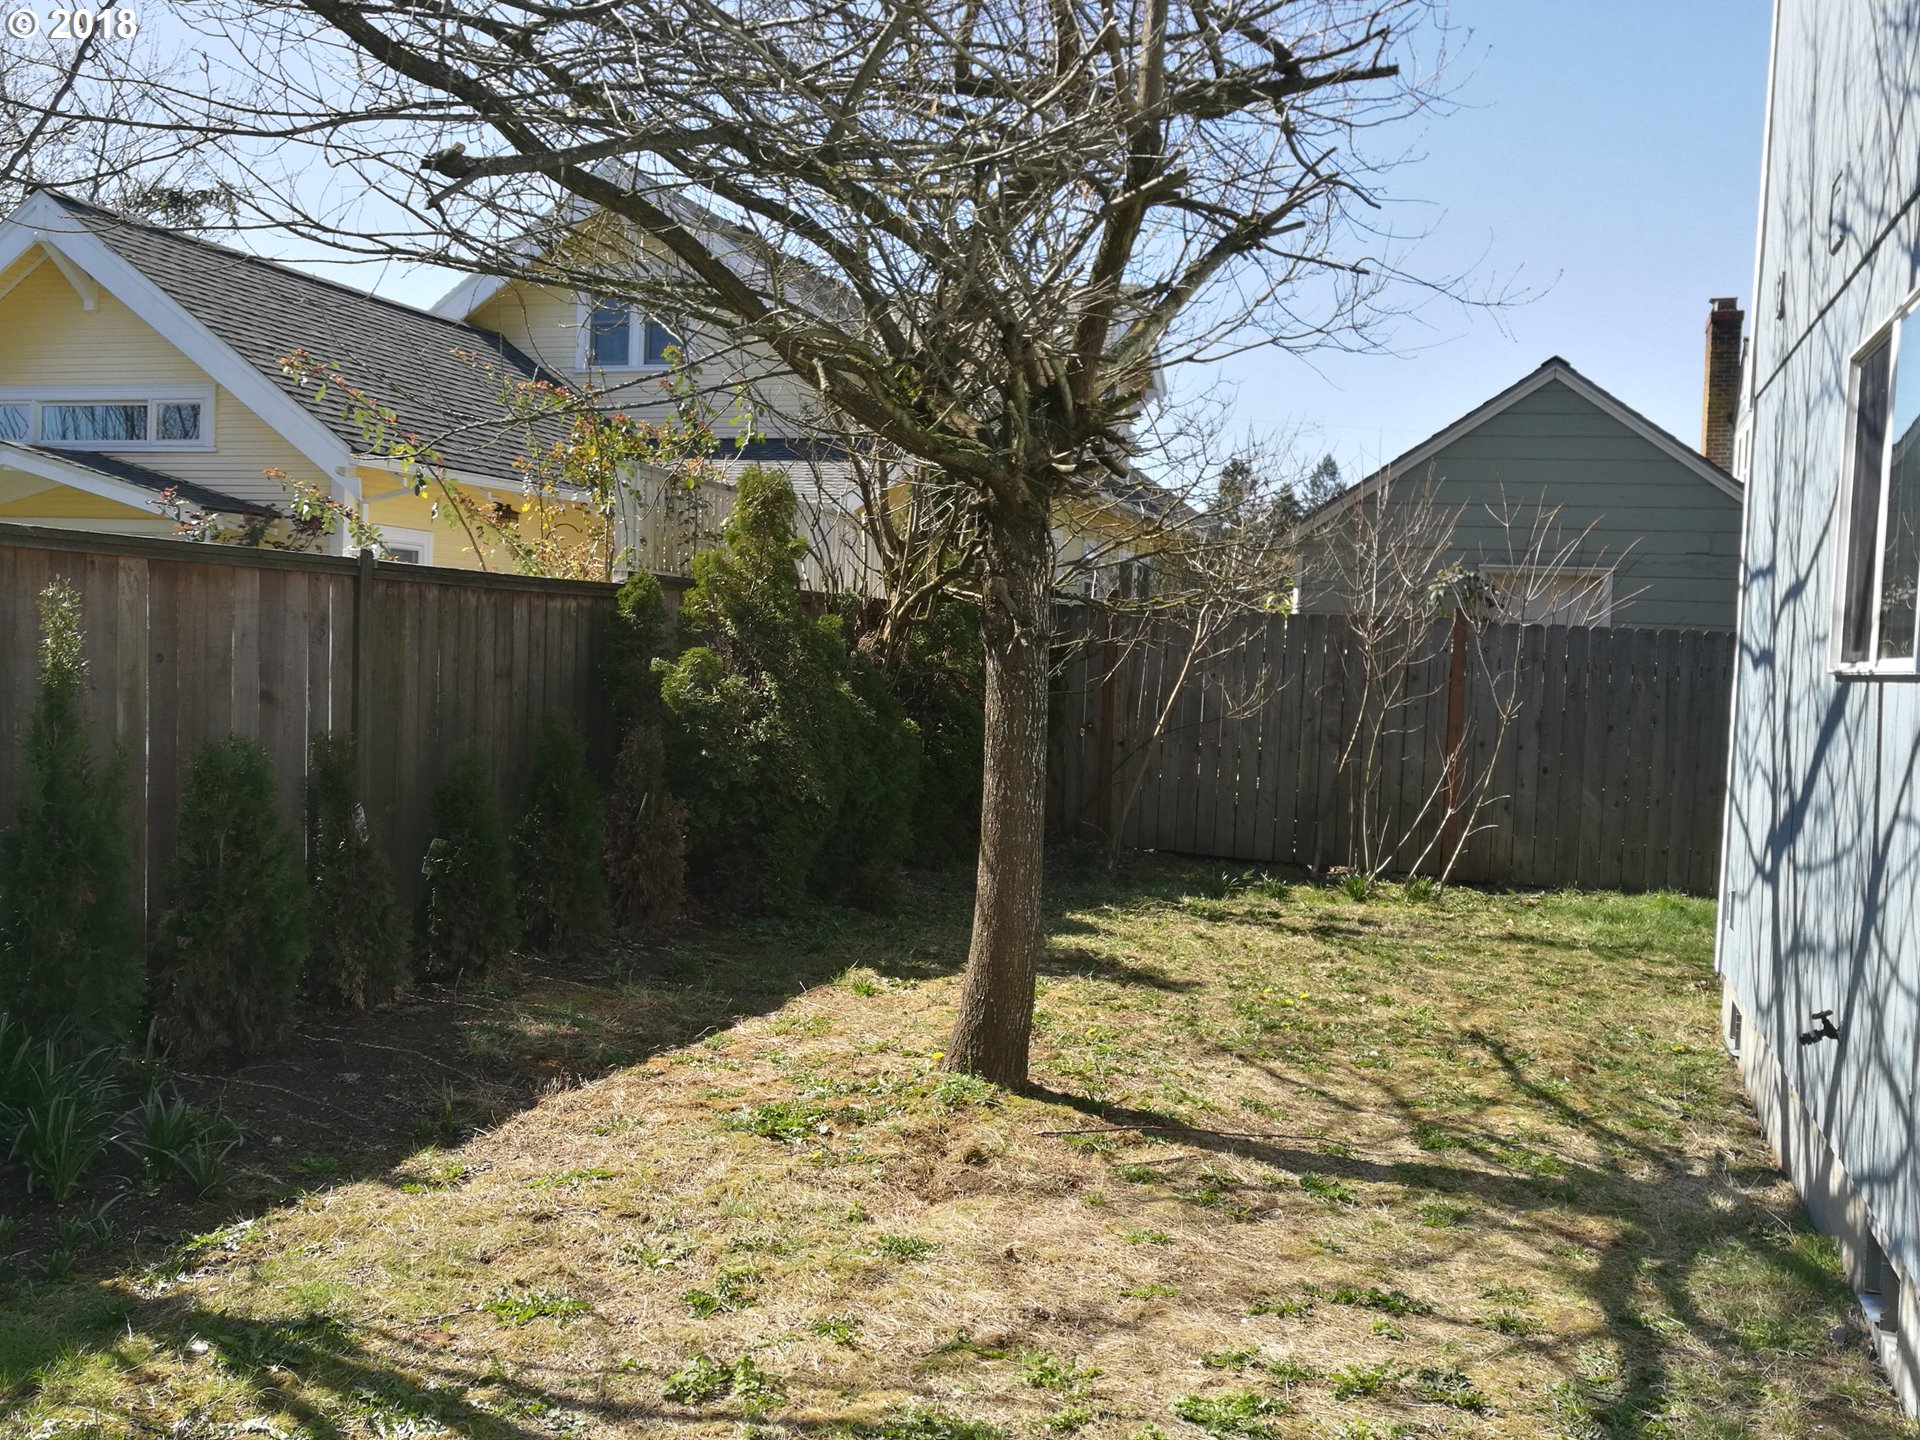 1338 sq. ft 3 bedrooms 2 bathrooms  House For Sale,Portland, OR